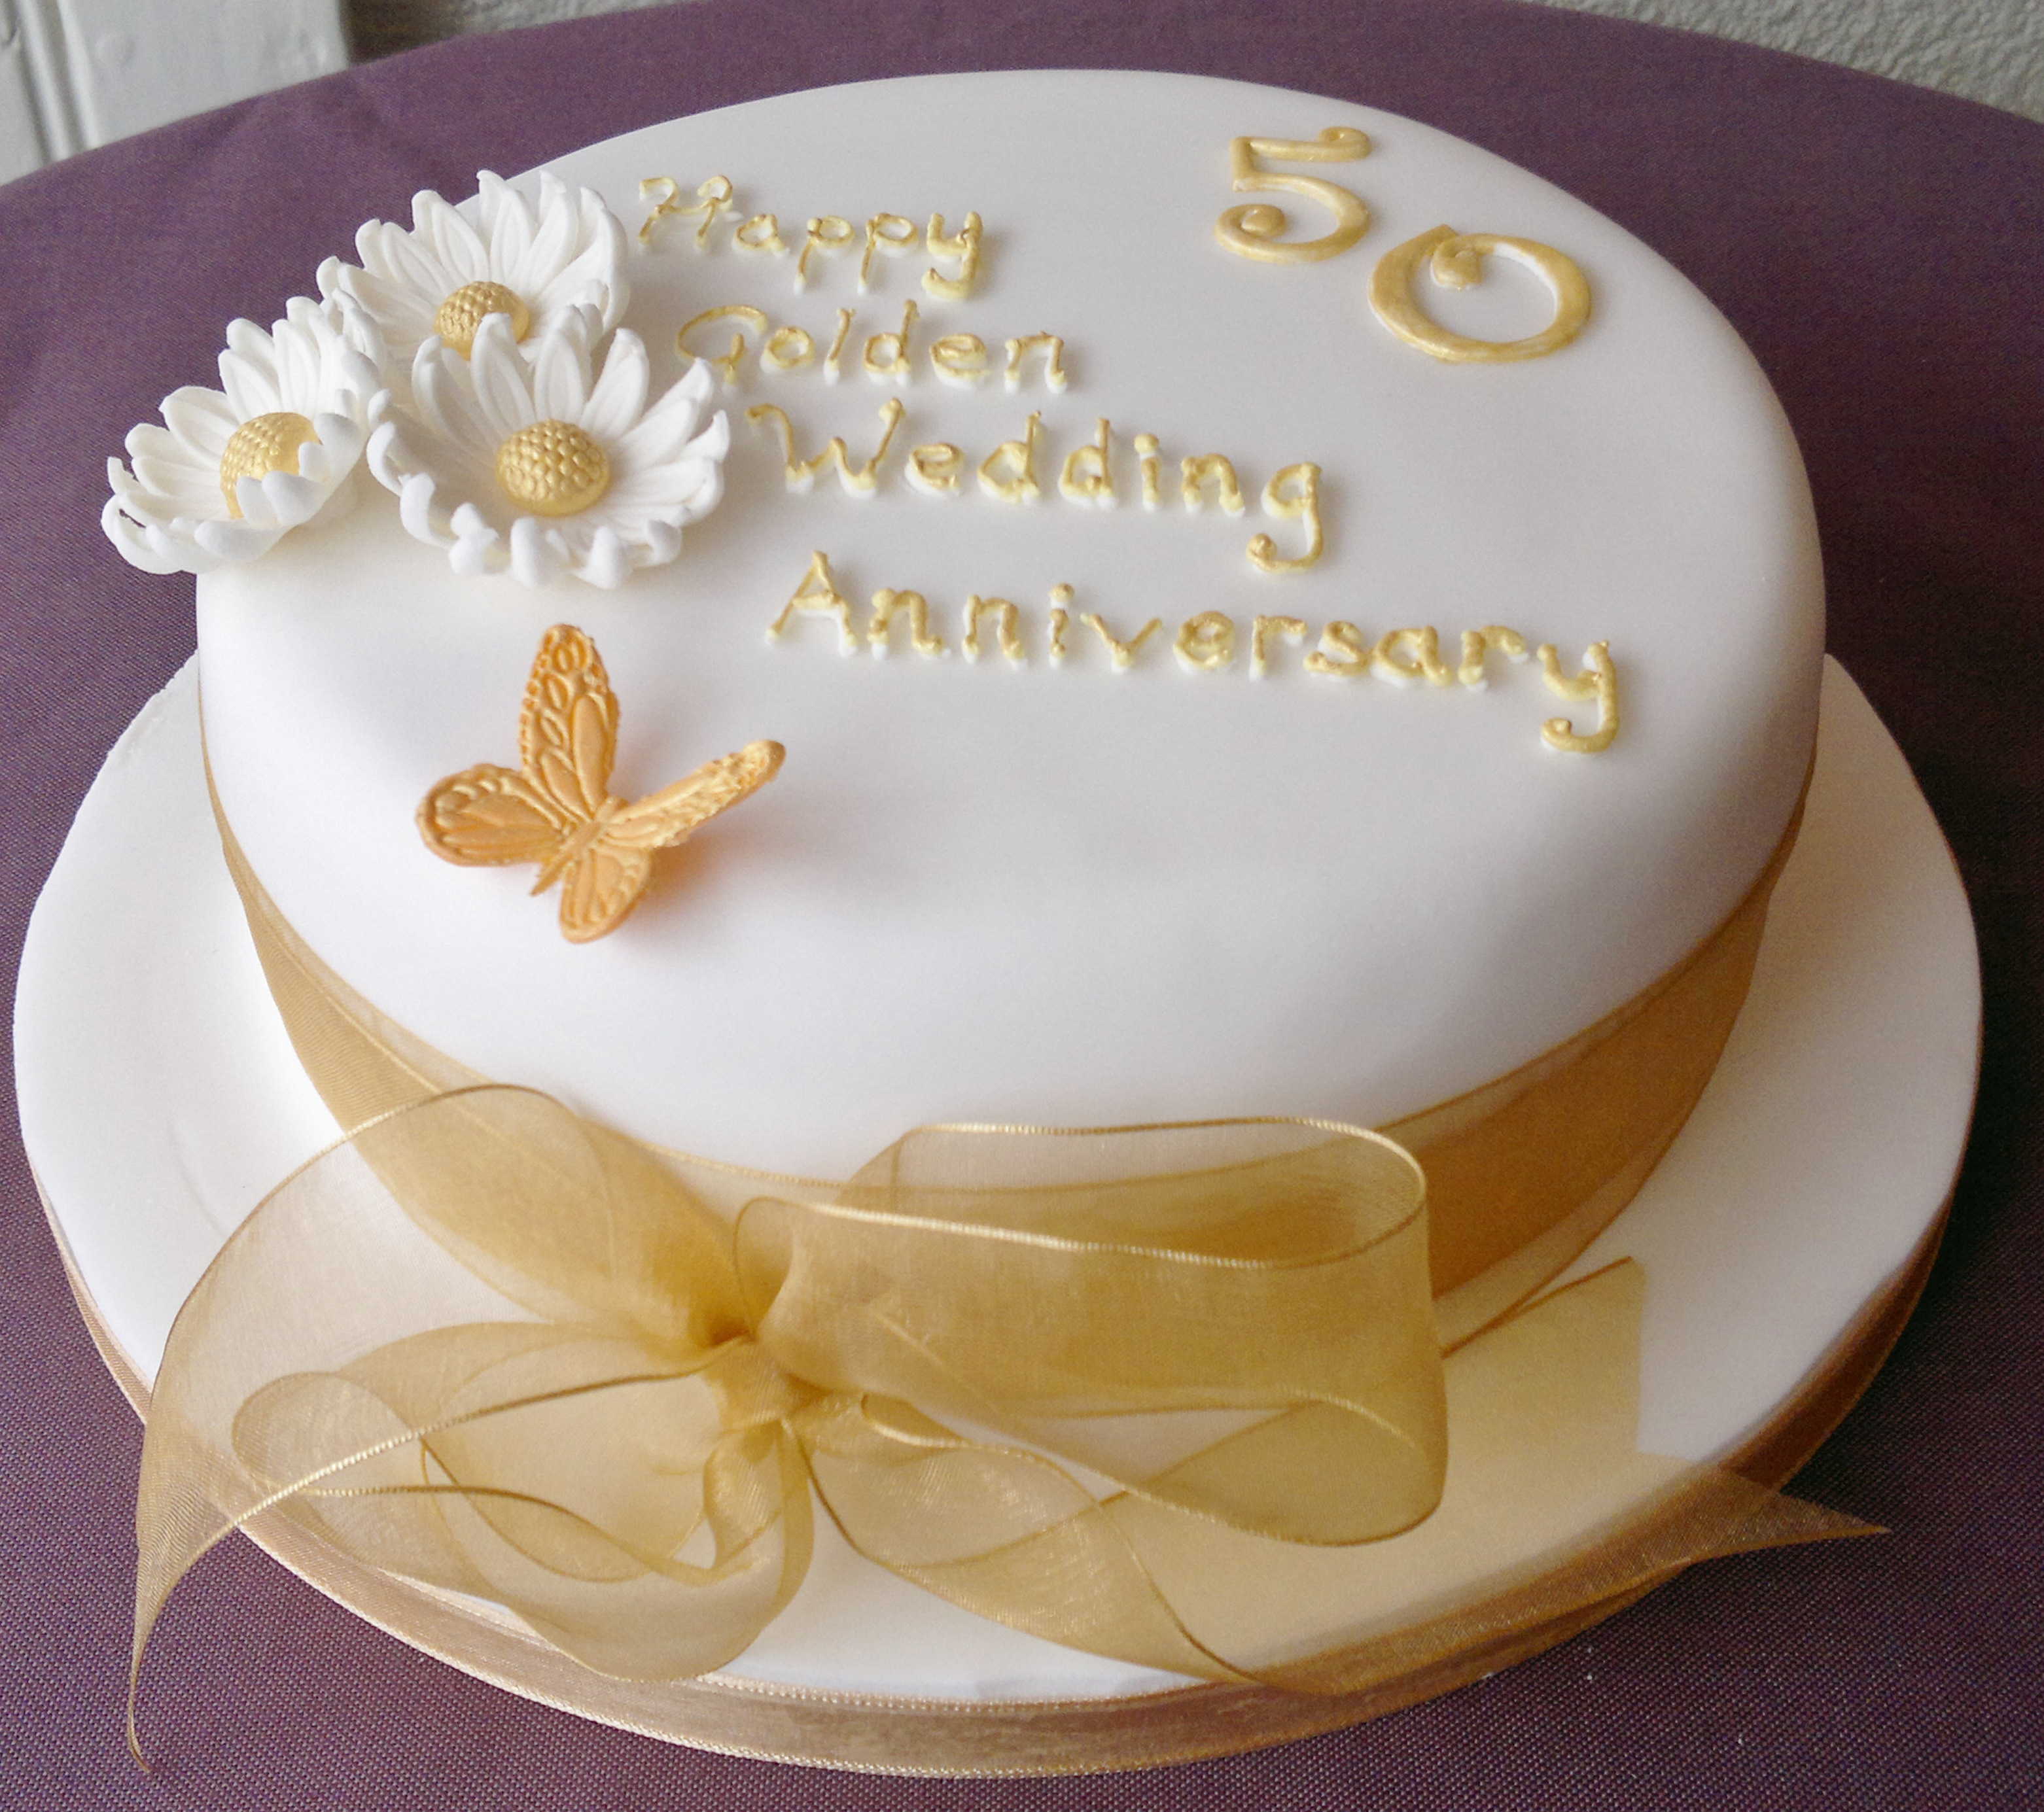 Anniversary Cakes - Too Nice to Slice